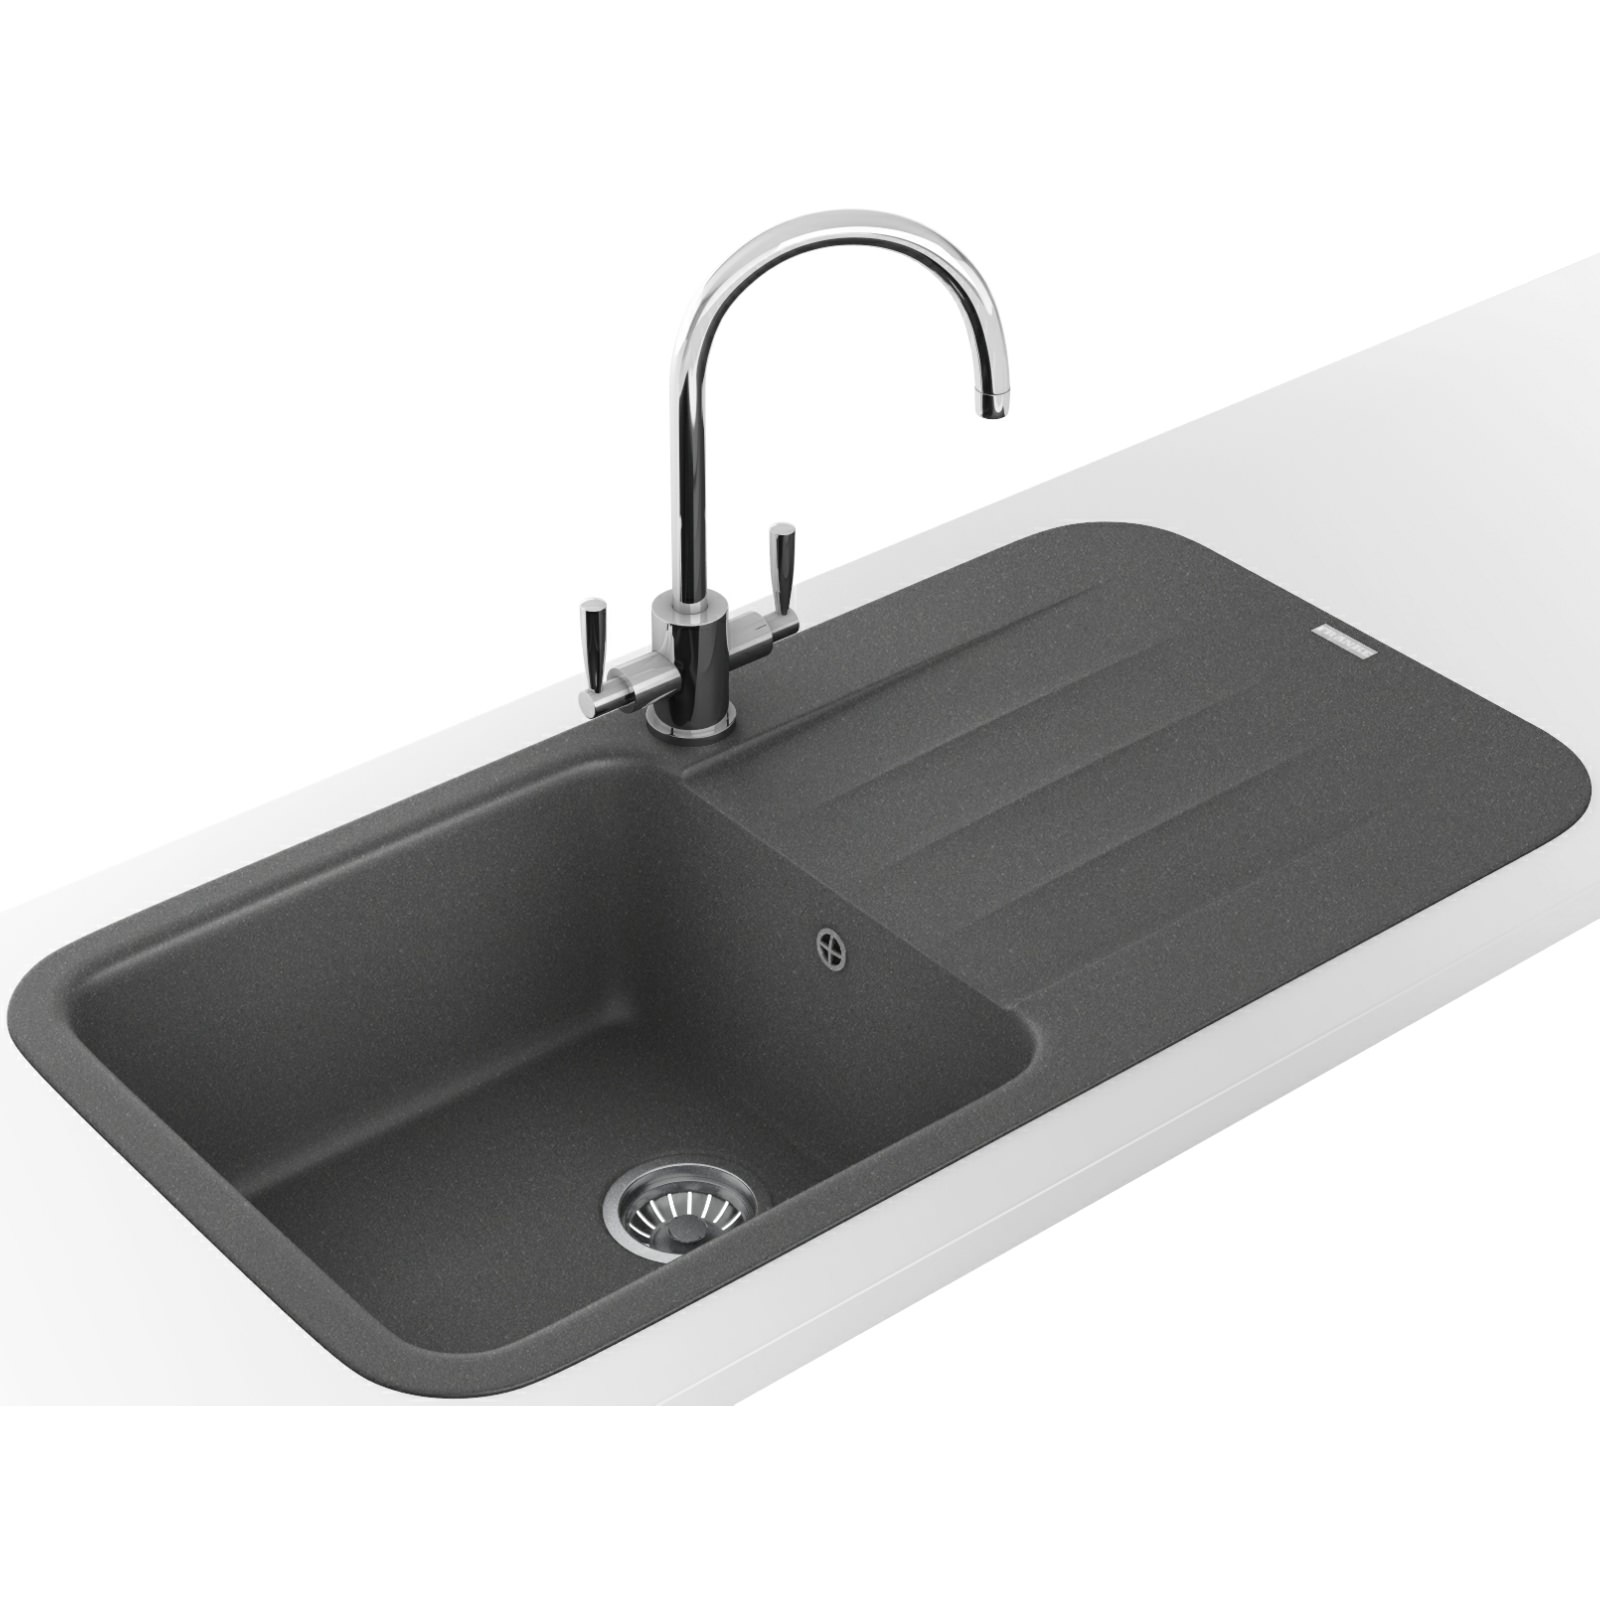 Franke Grey Sink : Franke Pebel DP PBG 611-970 Fragranite Stone Grey Inset Sink And Tap ...